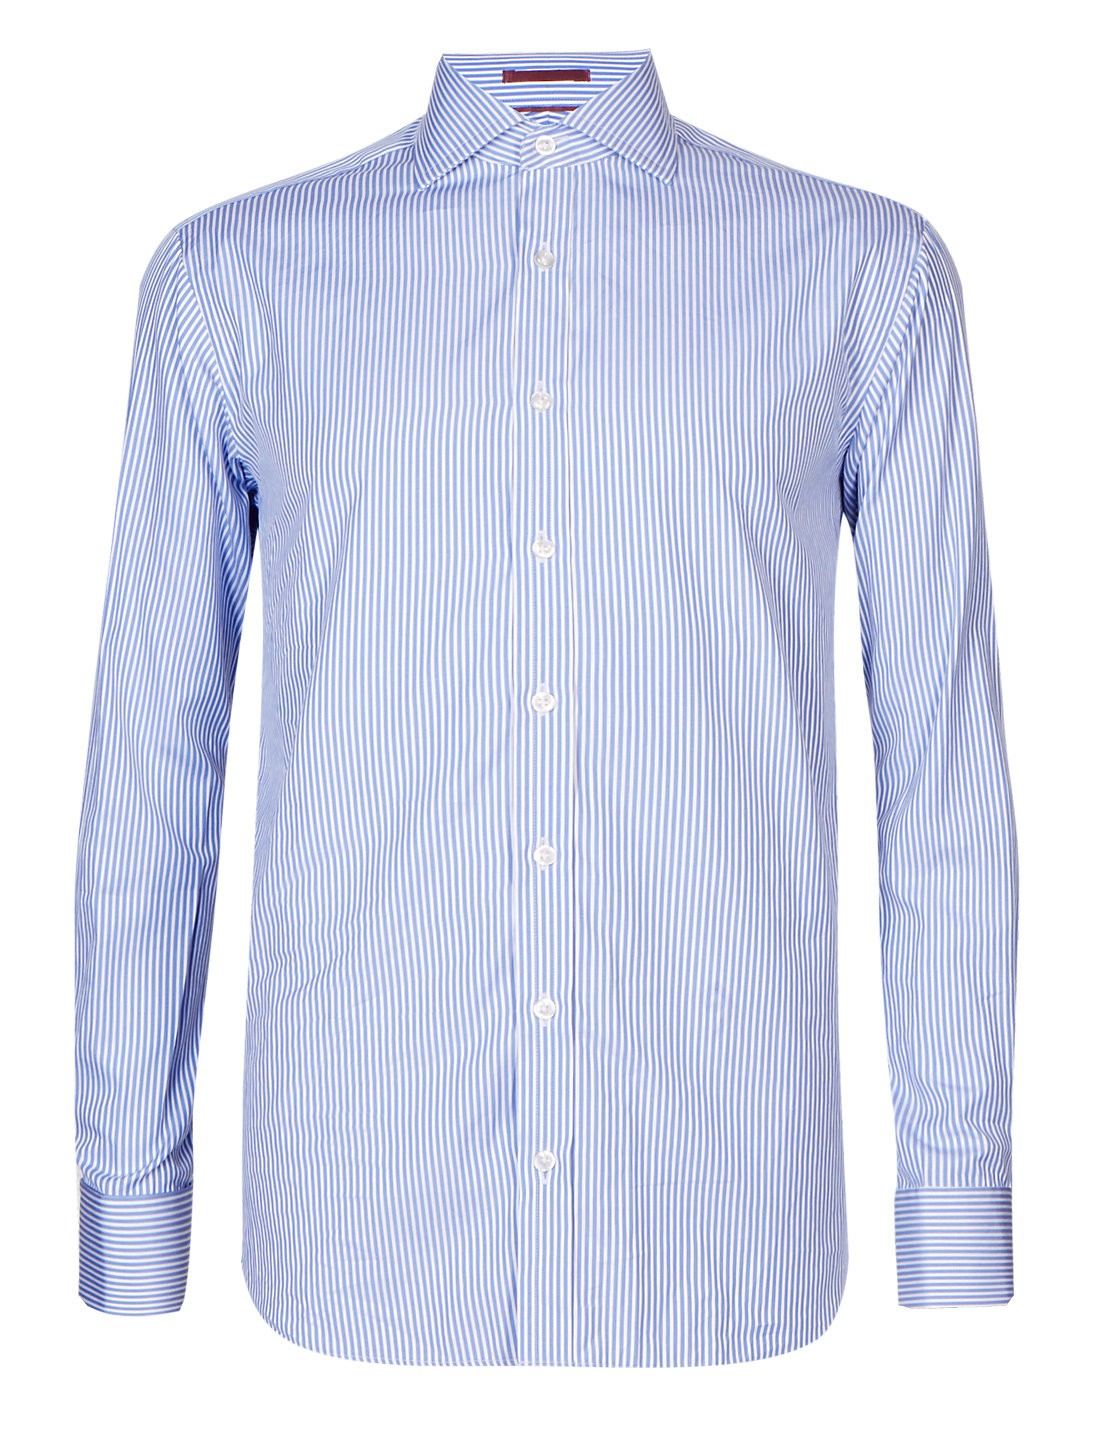 241efc972e16 M S COLLECTION LUXURY  Pure Cotton Non-Iron Tailored Fit Bold Striped Shirt